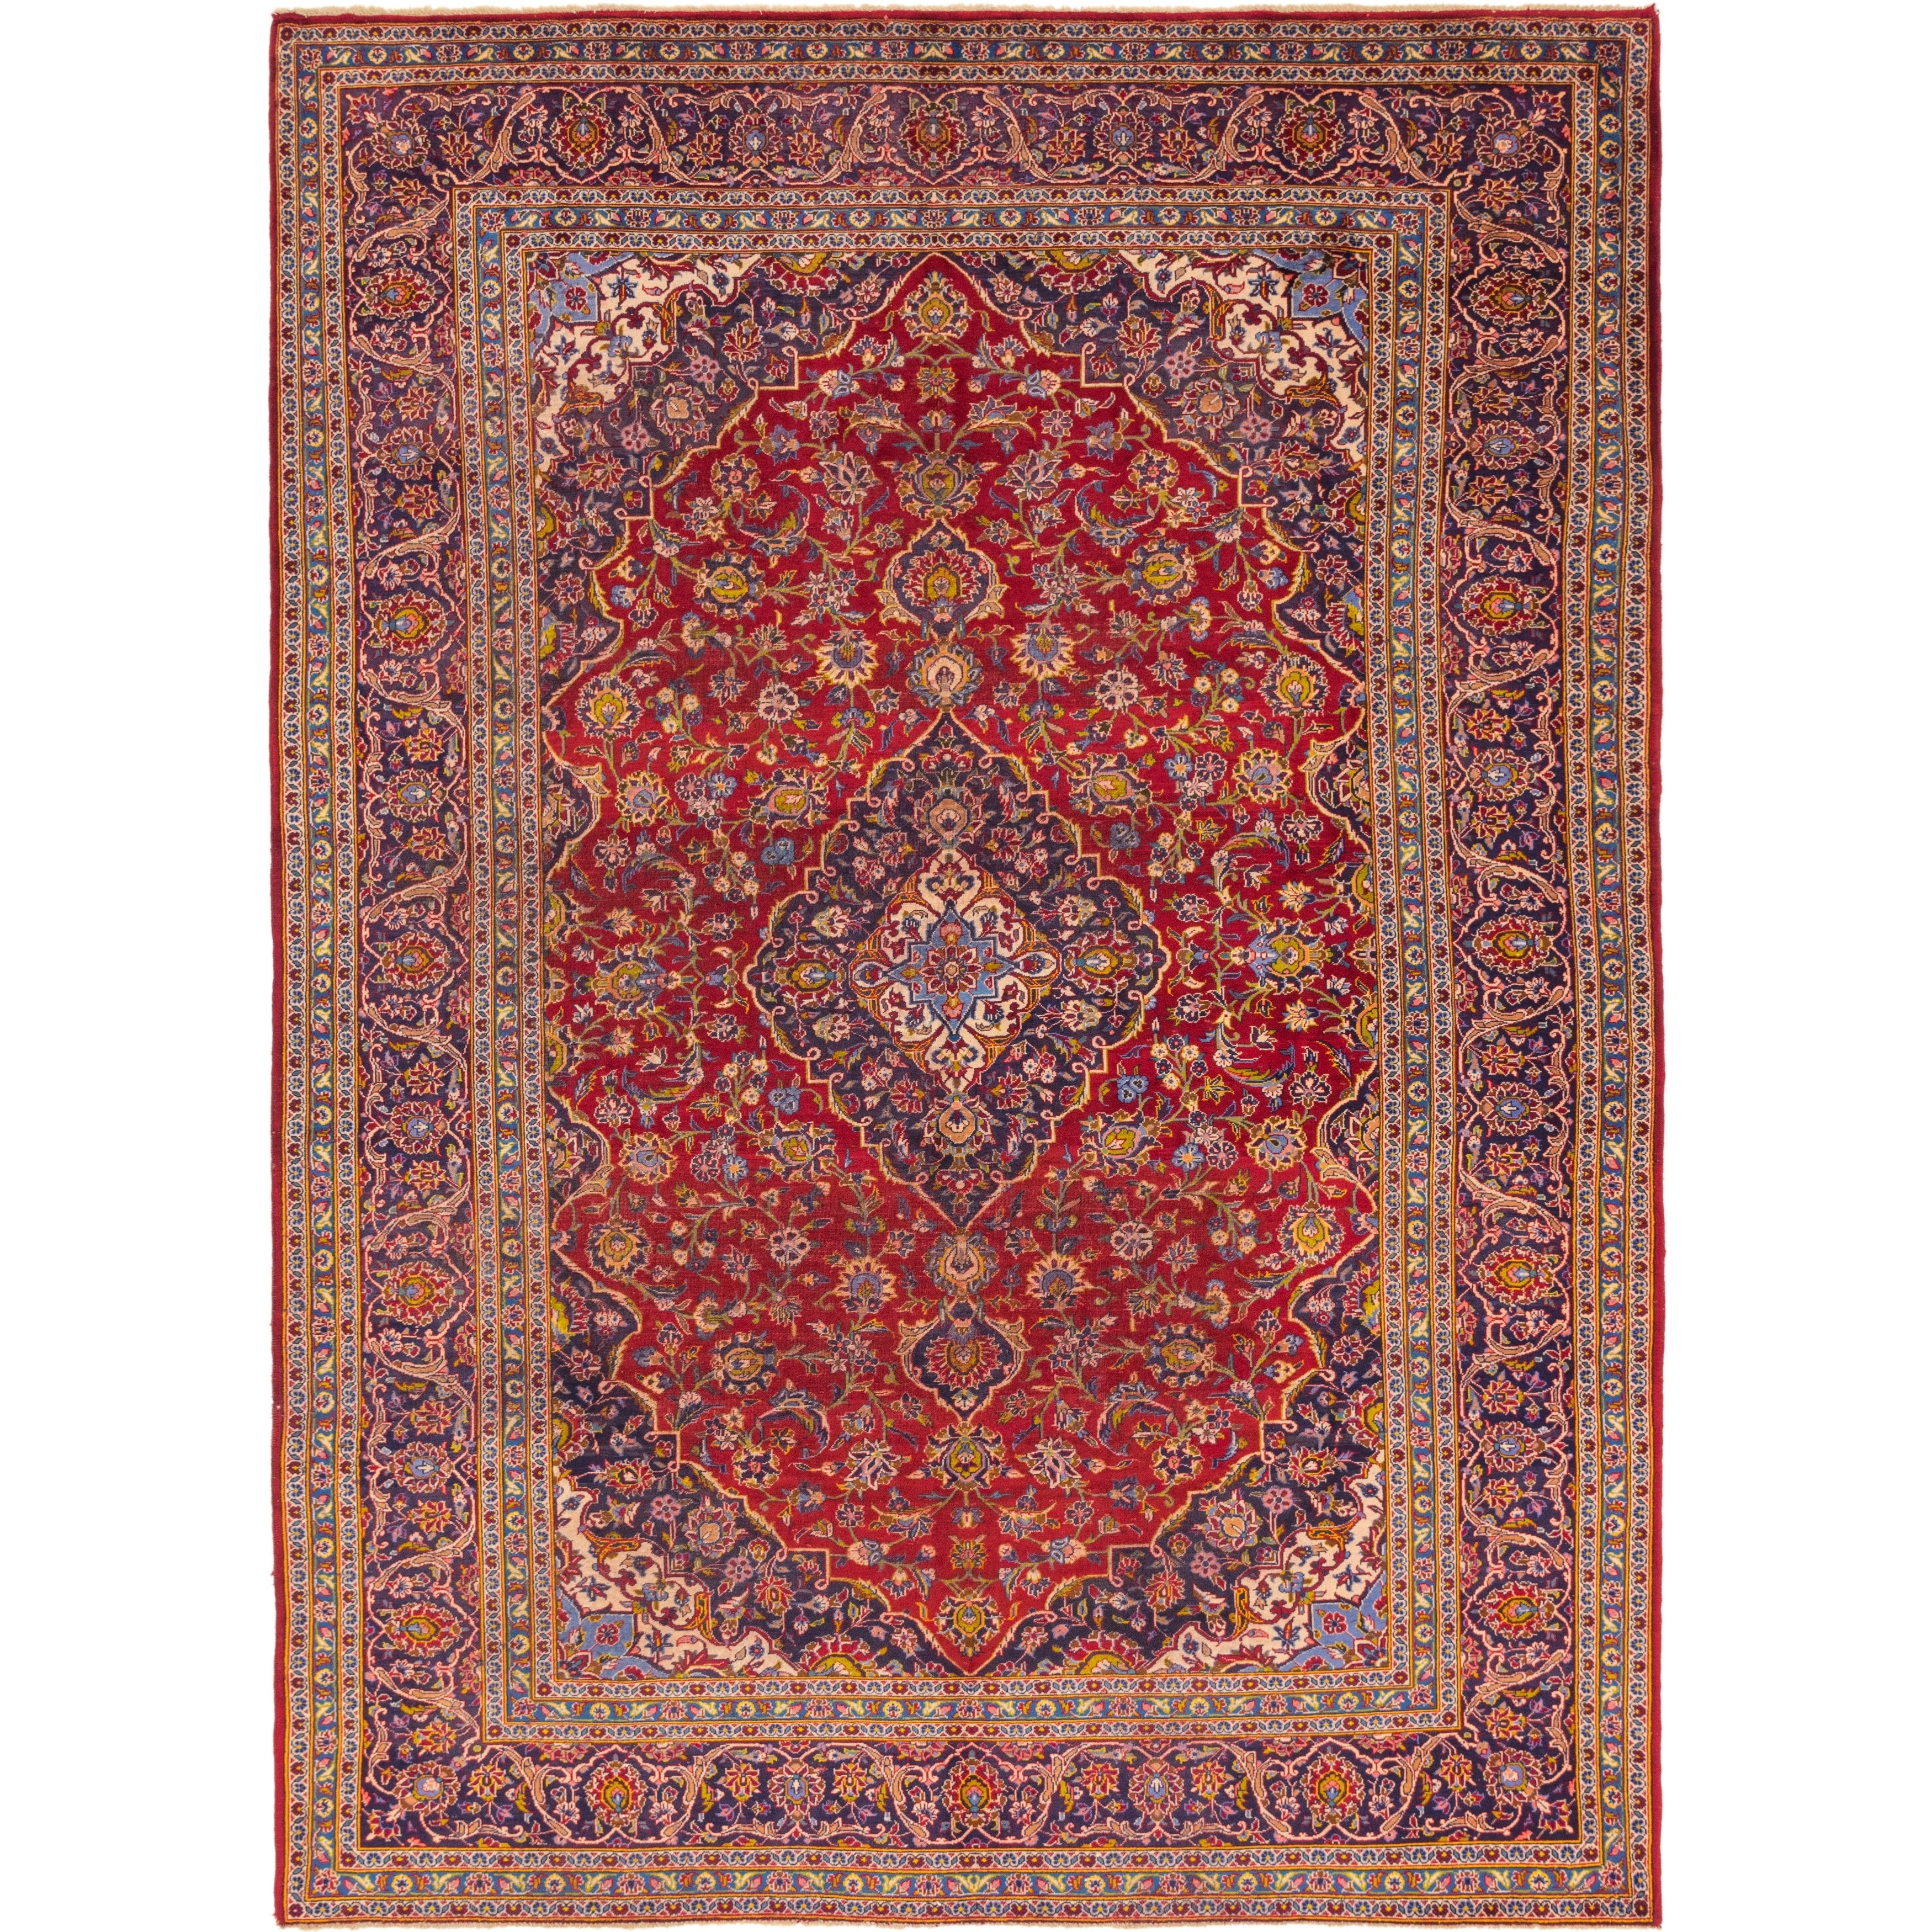 Hand Knotted Kashan Semi Antique Wool Area Rug - 9 8 x 13 4 (Red - 9 8 x 13 4)